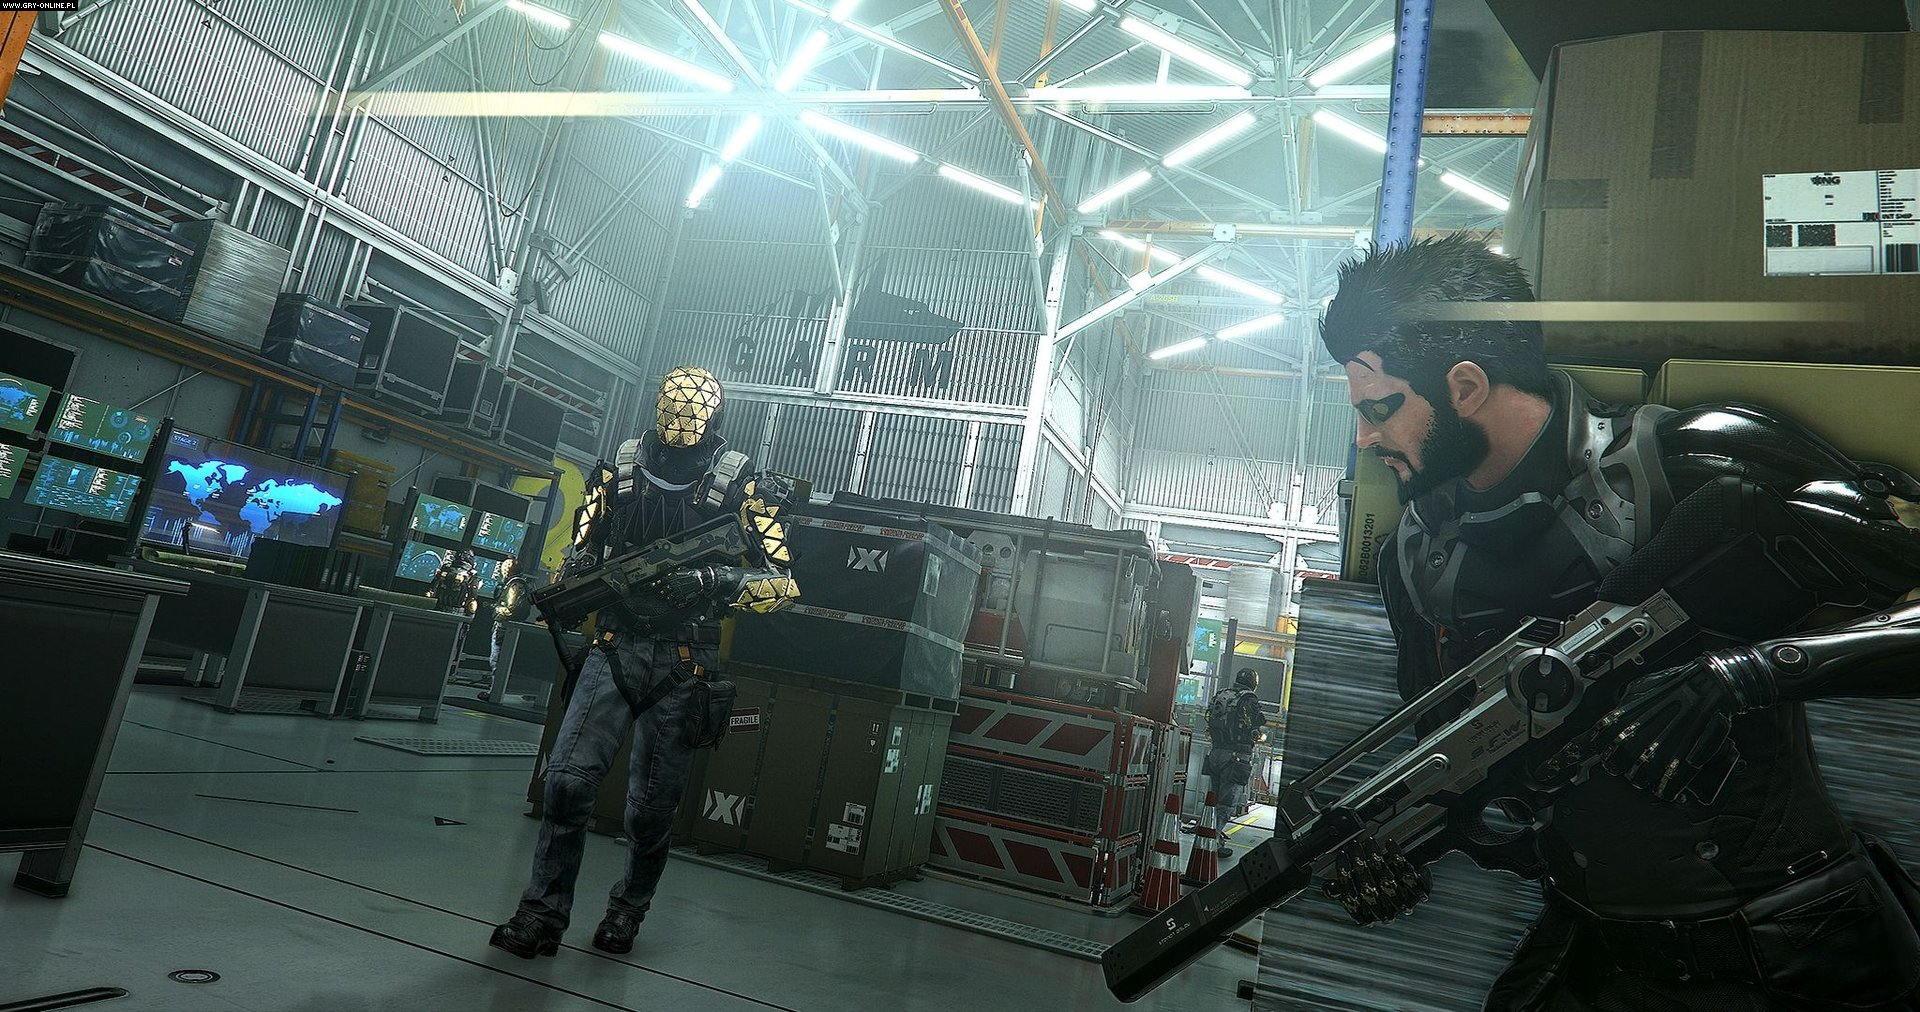 Deus Ex: Mankind Divided PC, PS4, XONE Games Image 9/28, Eidos Montreal, Square-Enix / Eidos